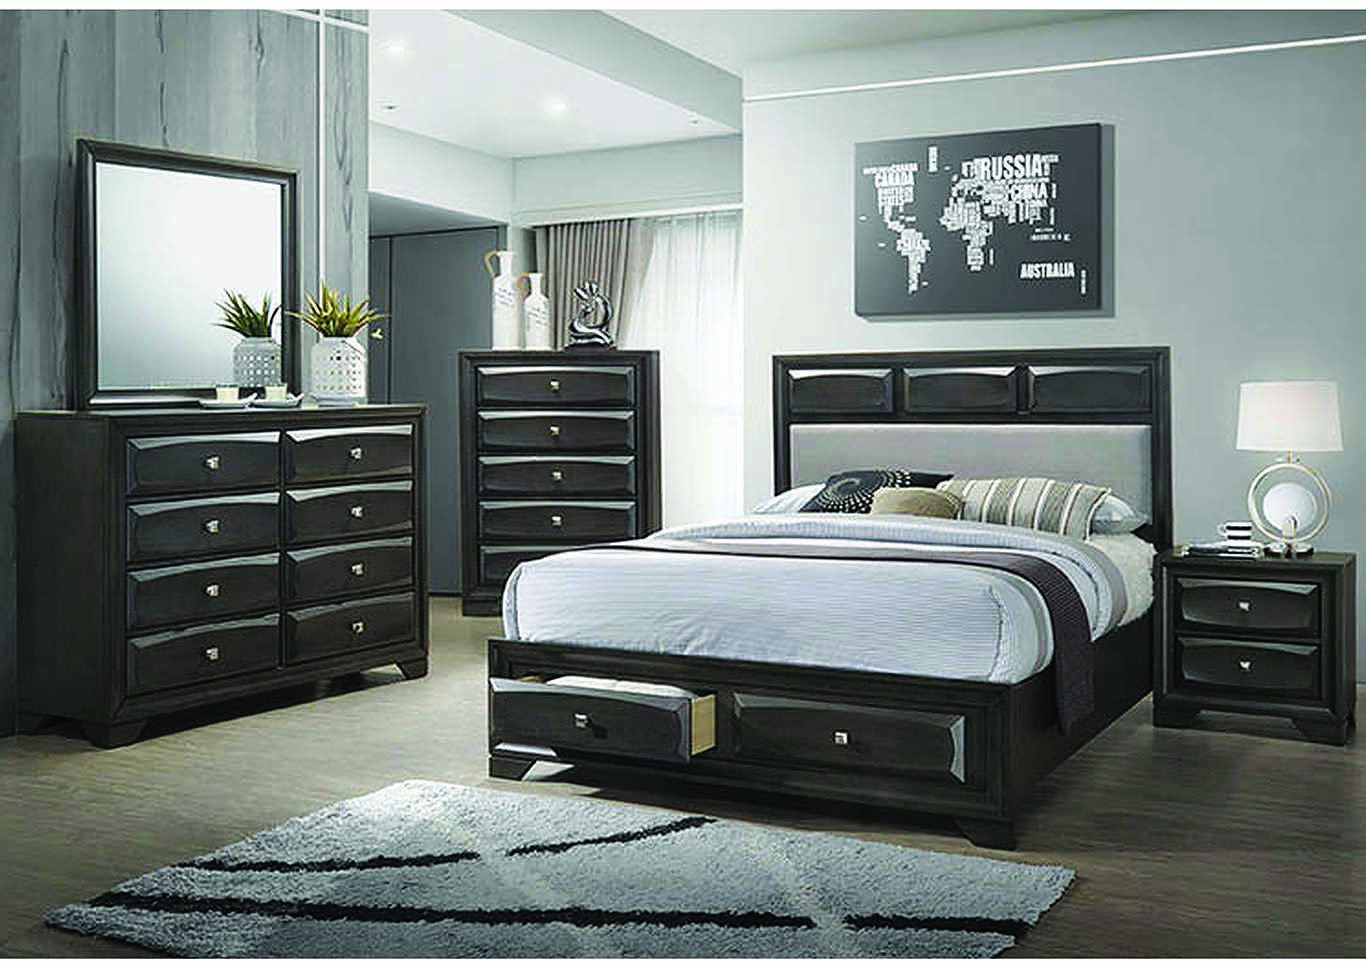 Beds With Storage Perth All Brands Furniture Edison Greenbrook North Brunswick Perth